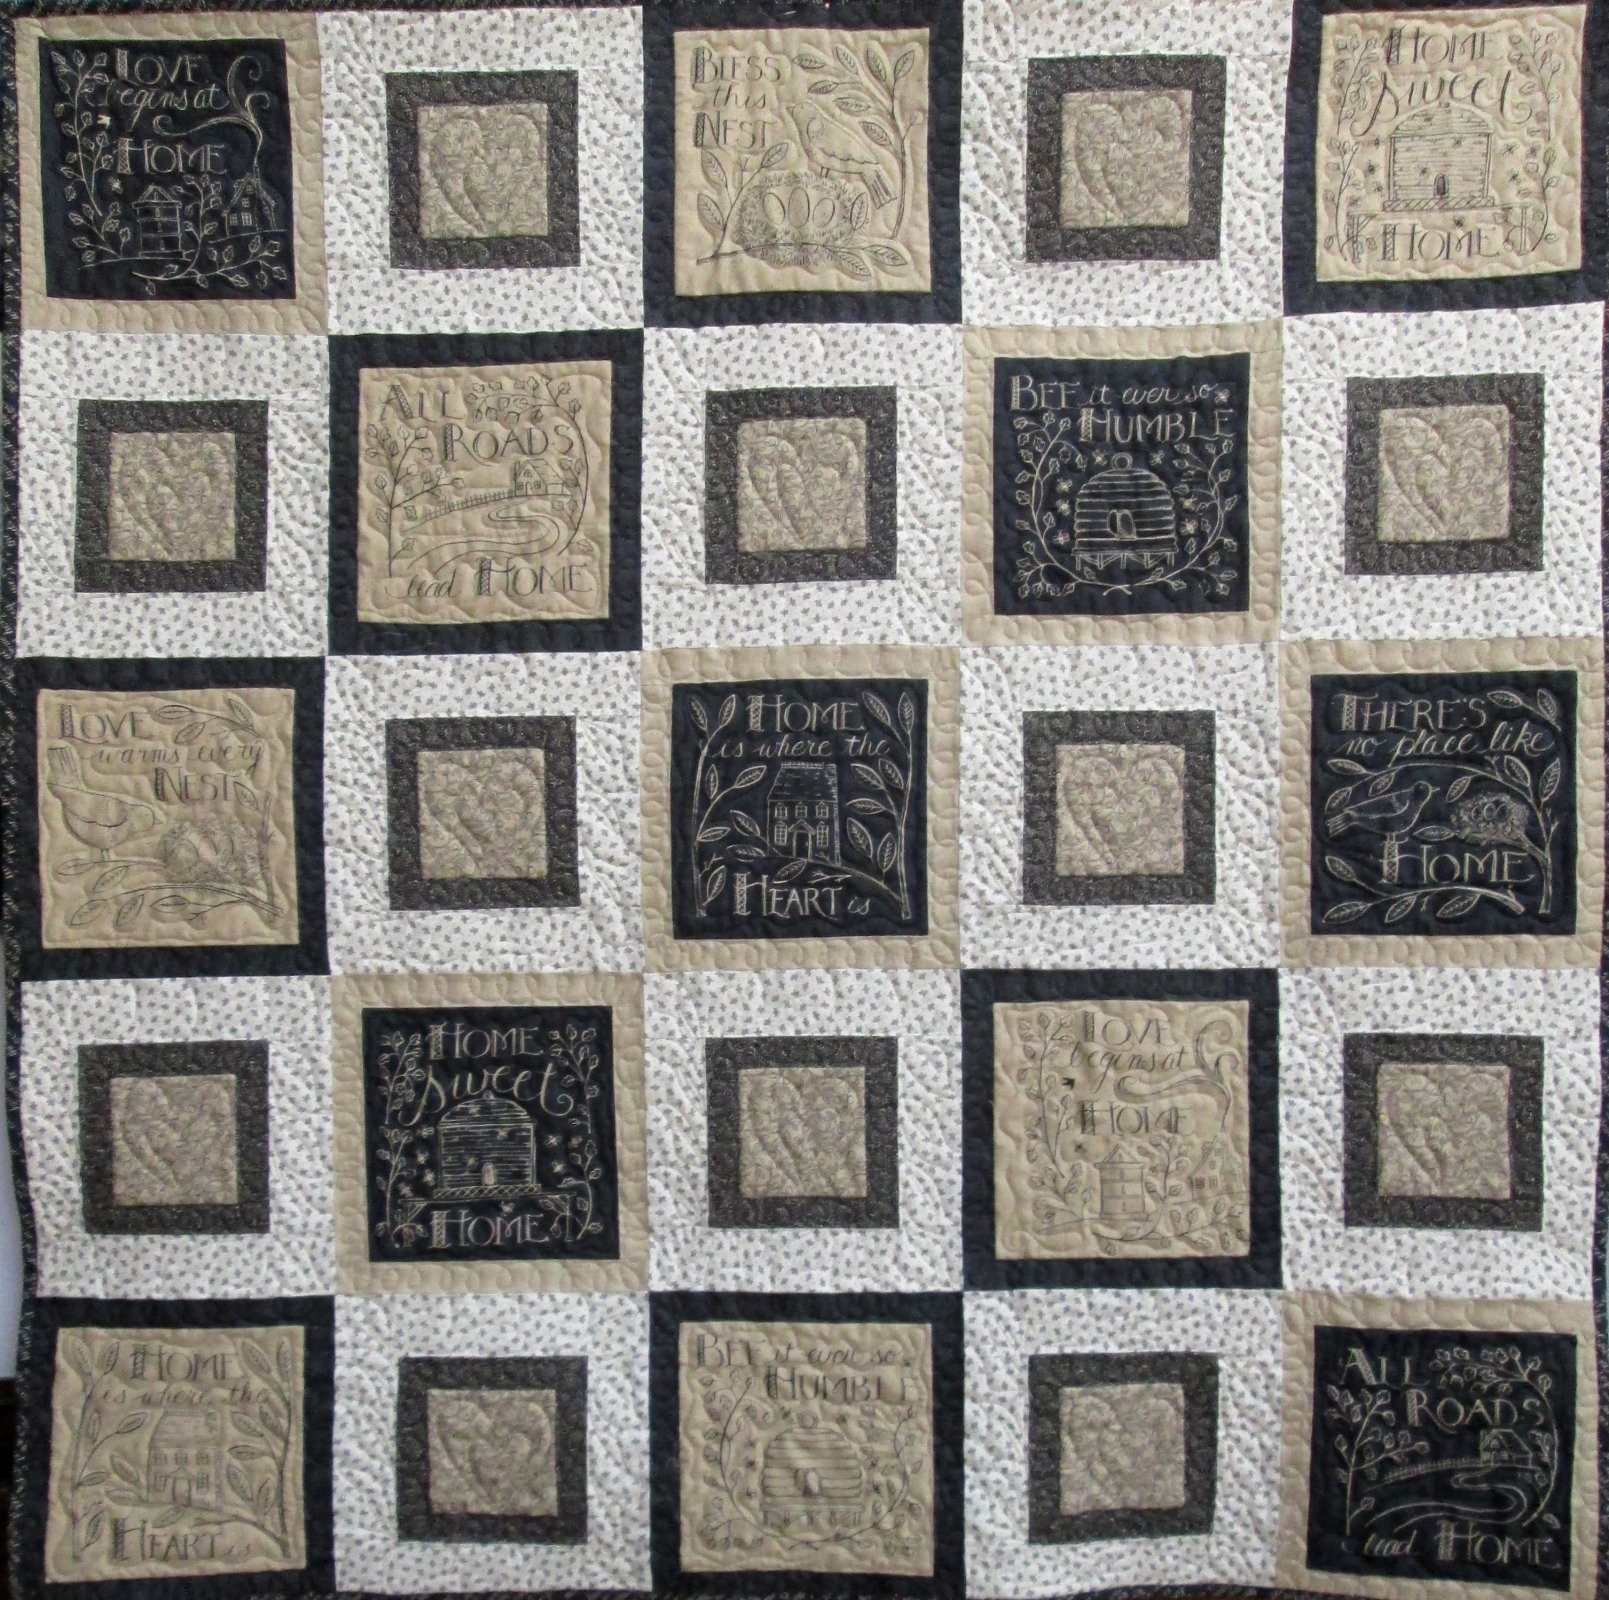 Home Squares Quilt Sample